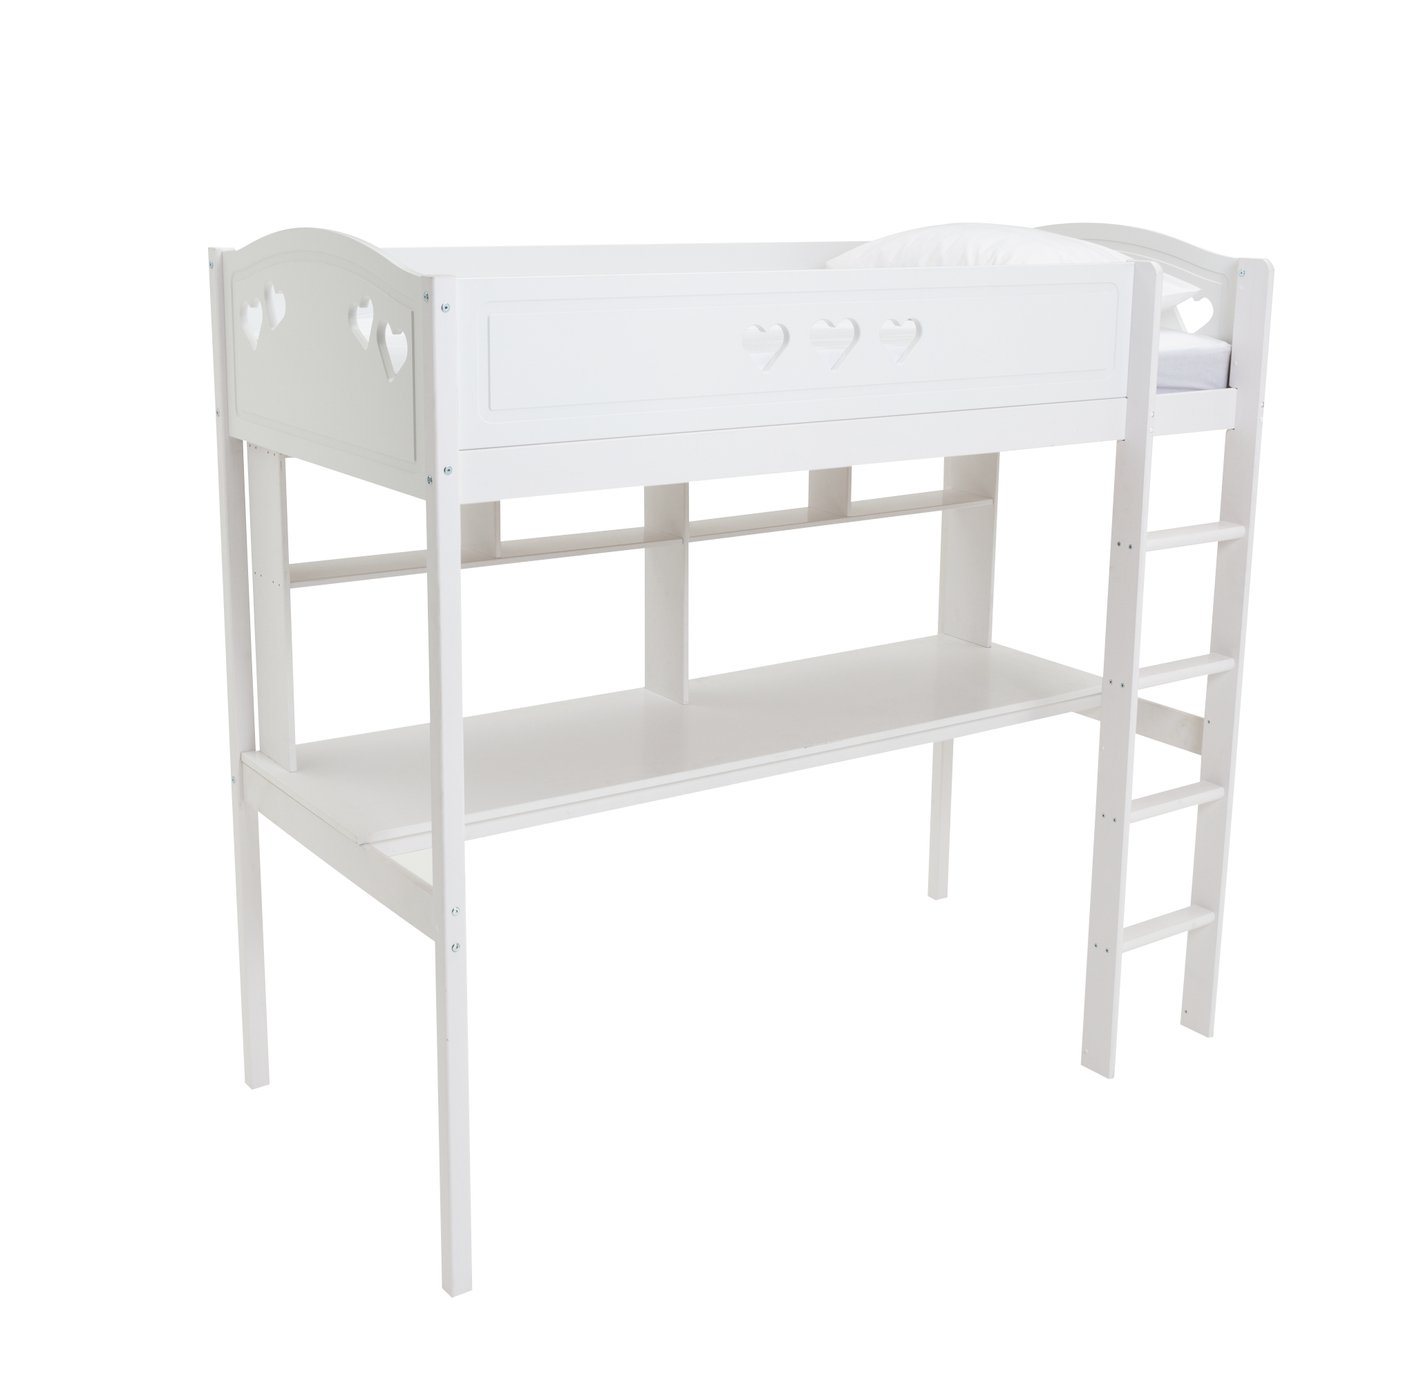 Argos Home Mia White High Sleeper Bed Frame, Desk & Shelves